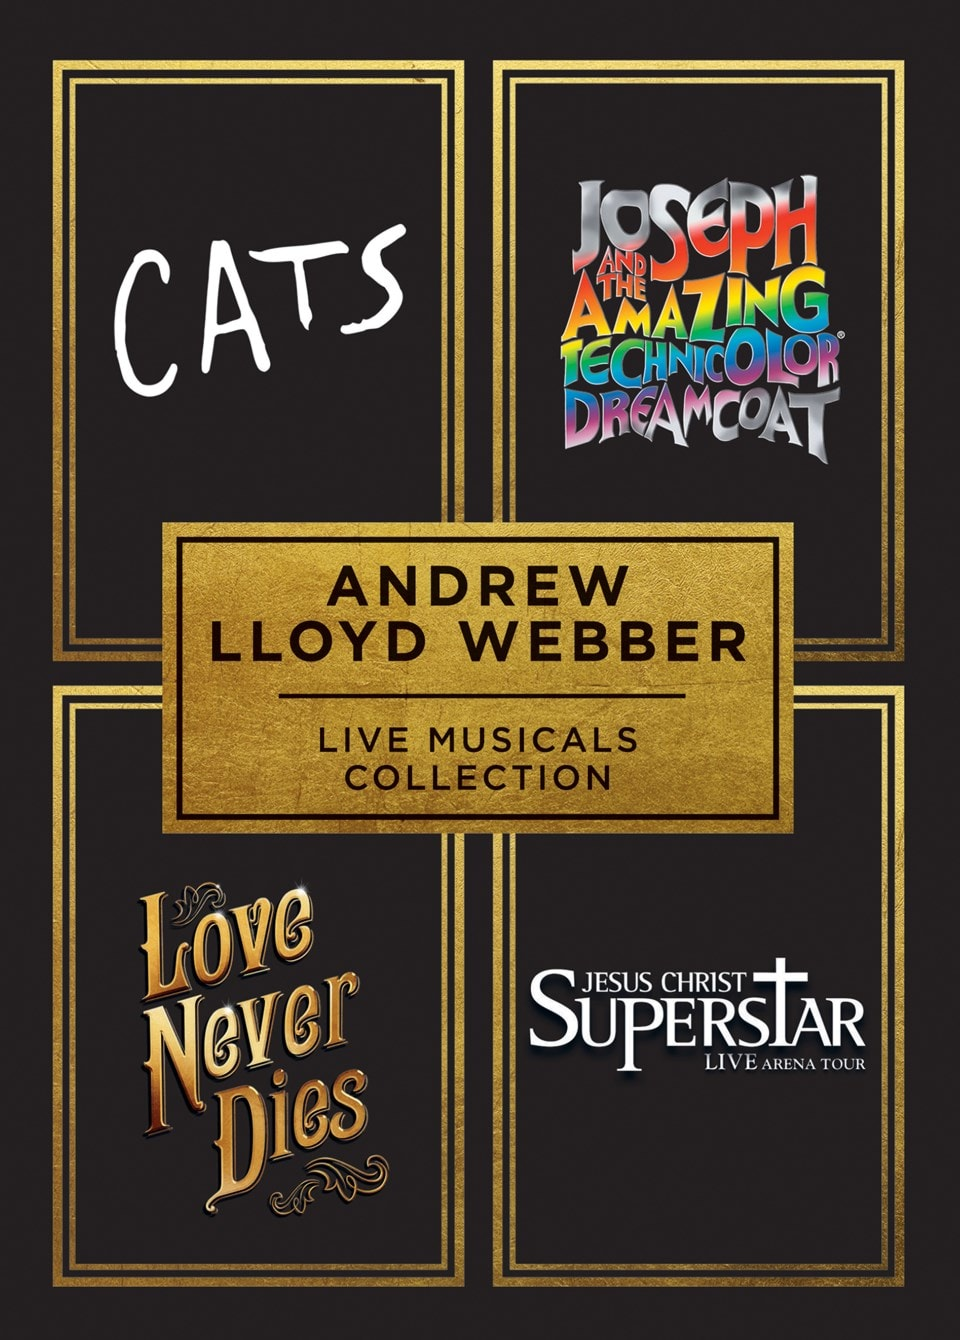 Andrew Lloyd Webber Live Musicals Collection - 1